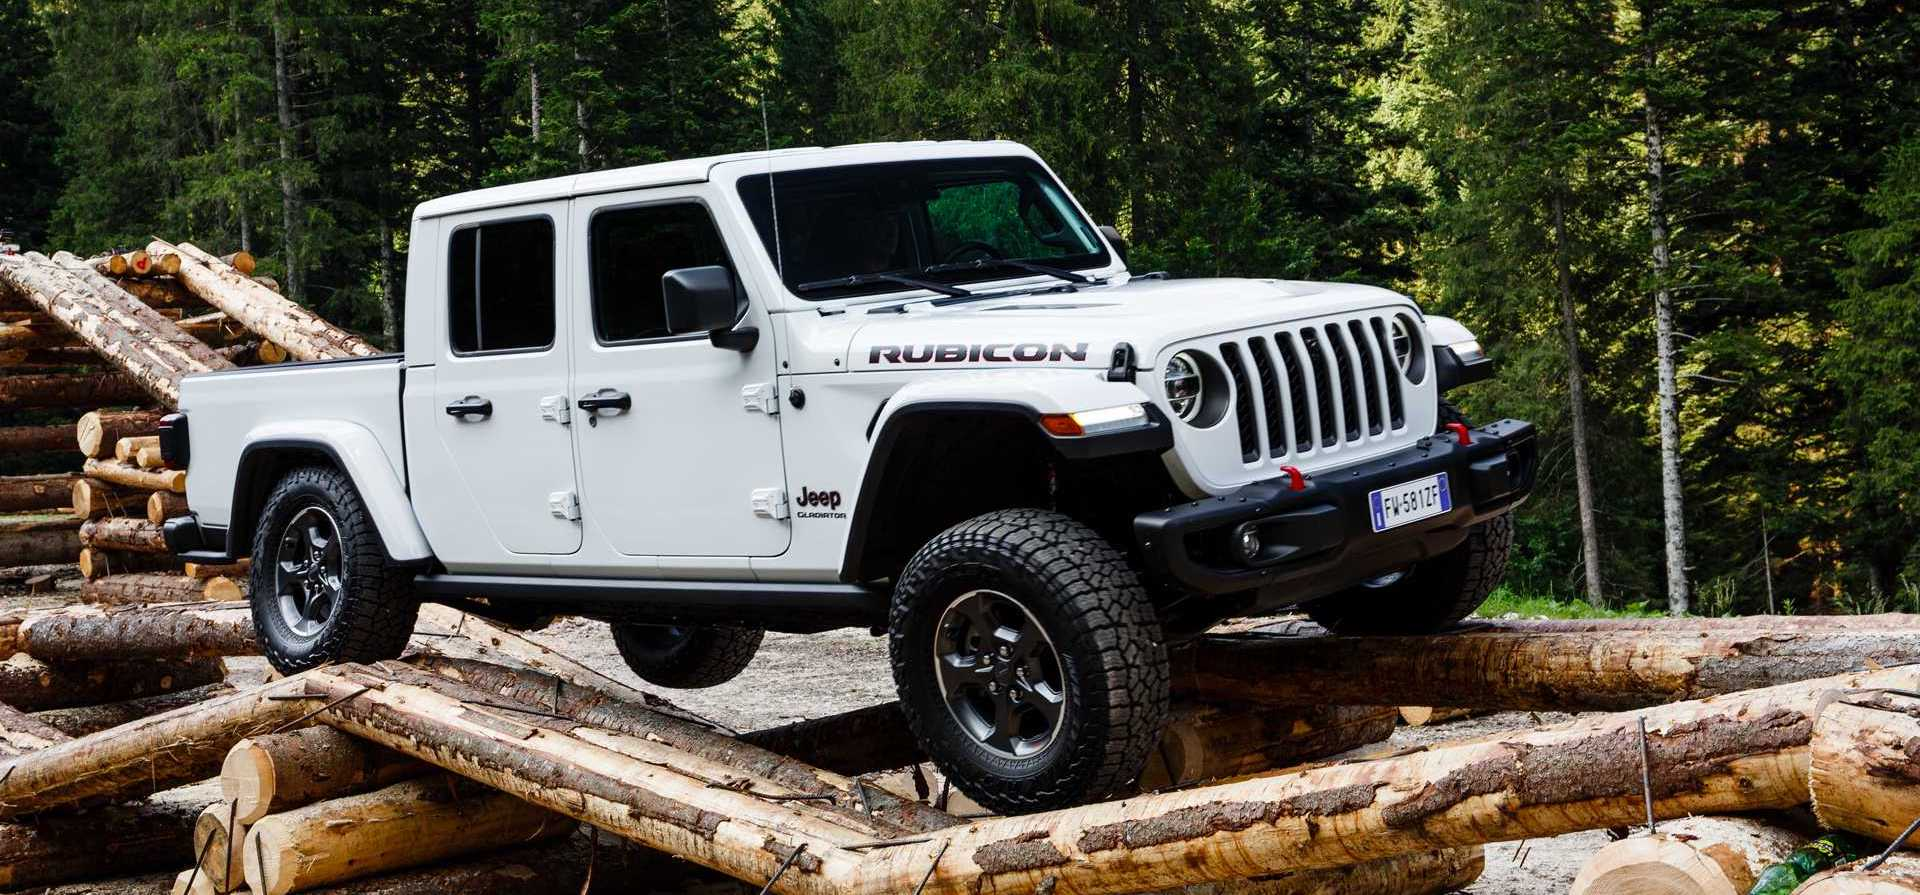 Jeep Gladiator Arrives In Europe With 260-HP V6 Diesel Engine